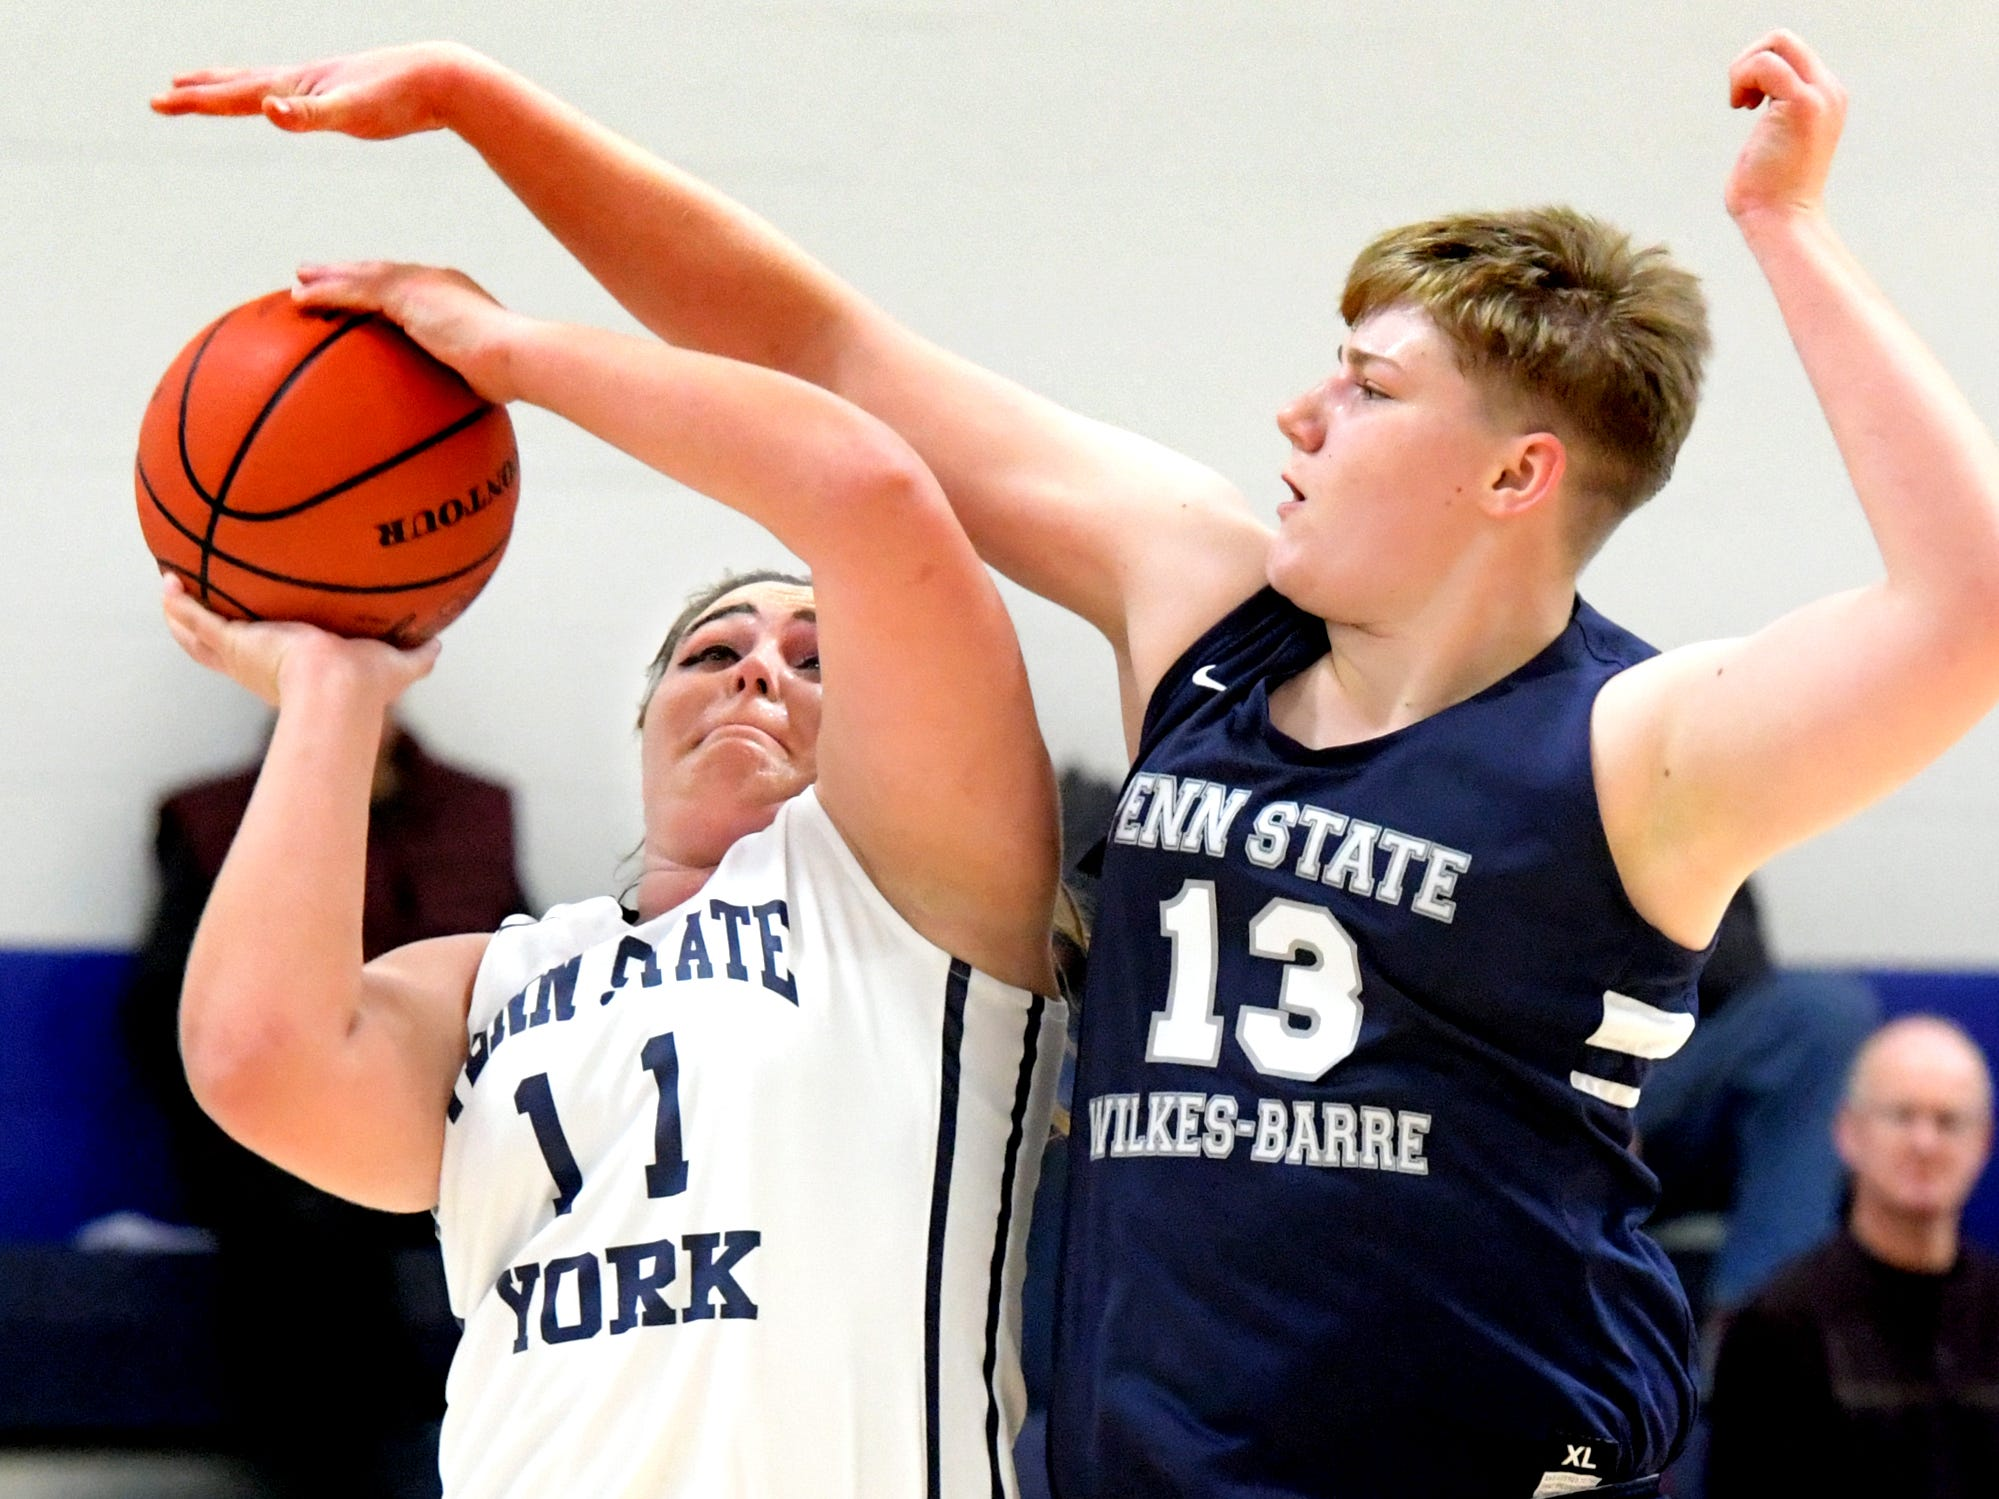 Penn State York's Ashton Ball has a shot blocked by Penn State Wilkes-Barre's Victoria Benning during action in York Tuesday, Nov. 27, 2018. Bill Kalina photo